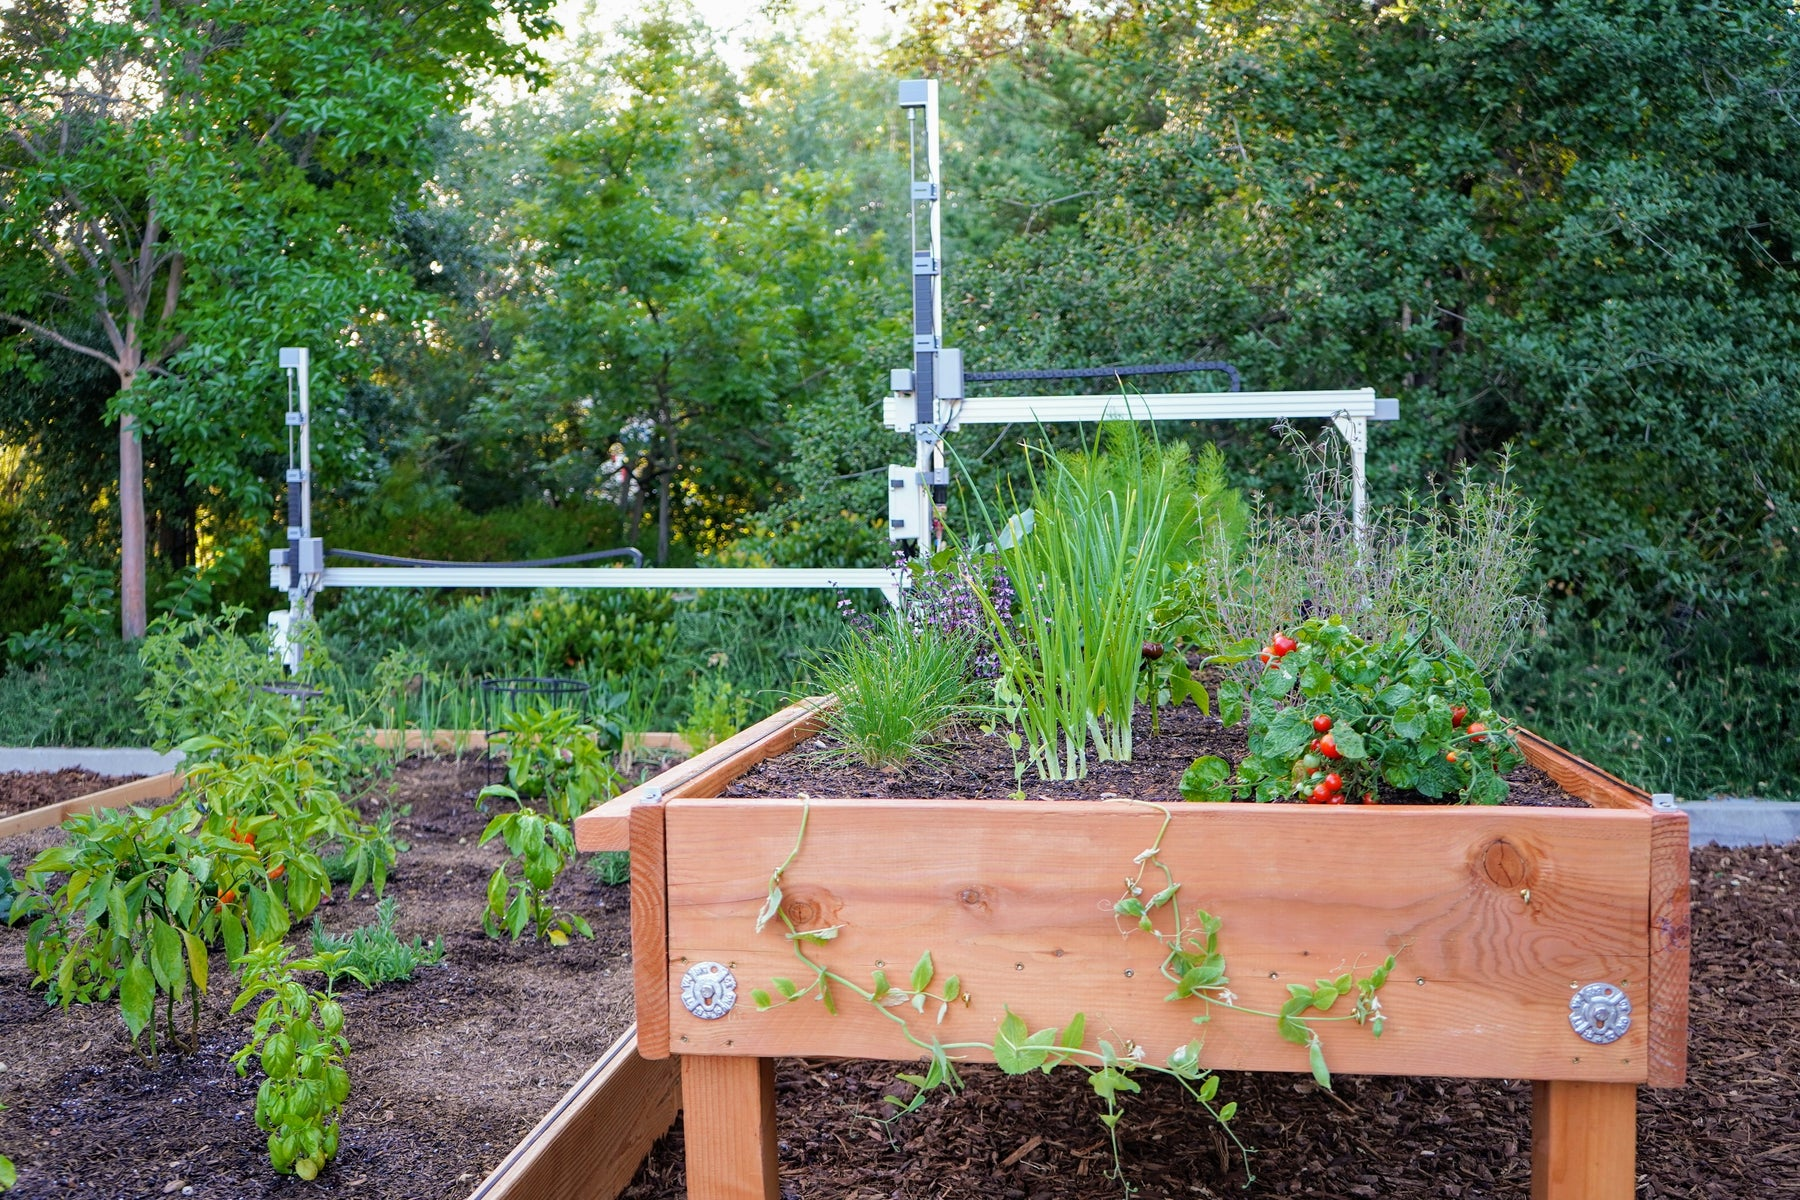 How much food can FarmBot grow?